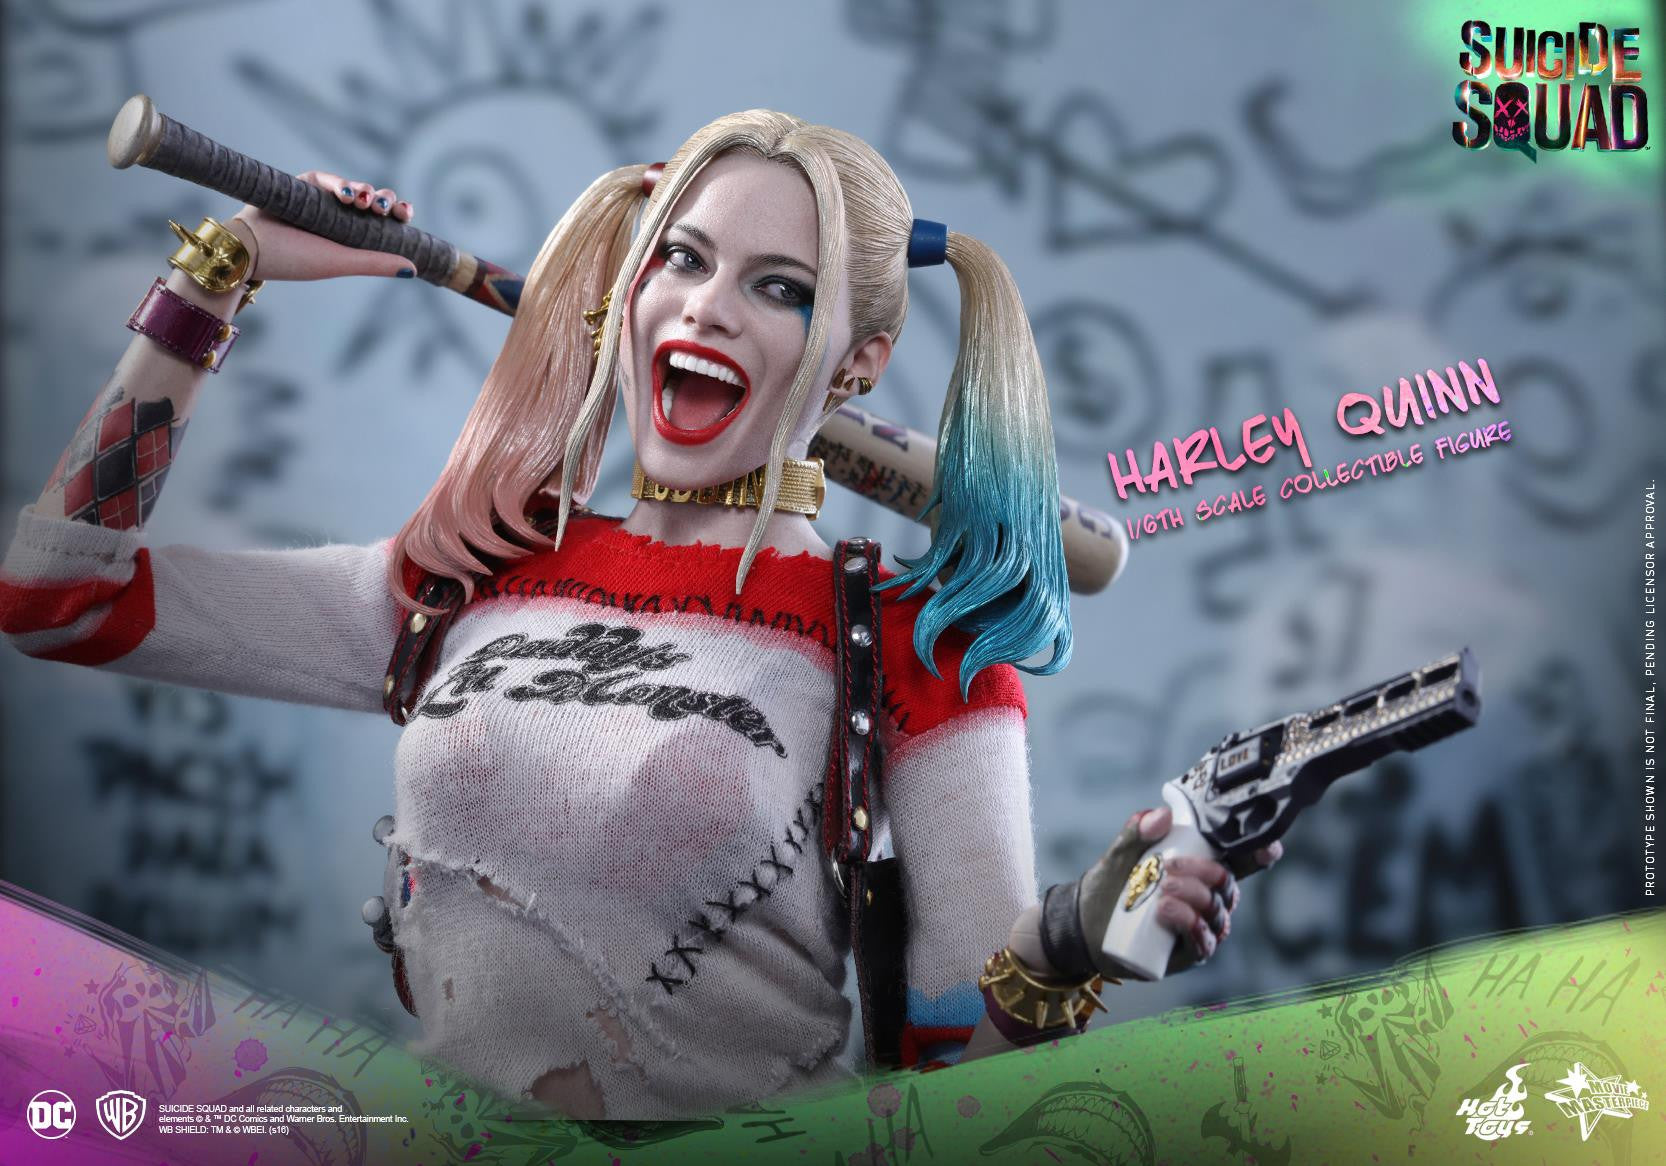 Hot Toys - MMS383 - Suicide Squad - Harley Quinn (Normal Edition) - Marvelous Toys - 15